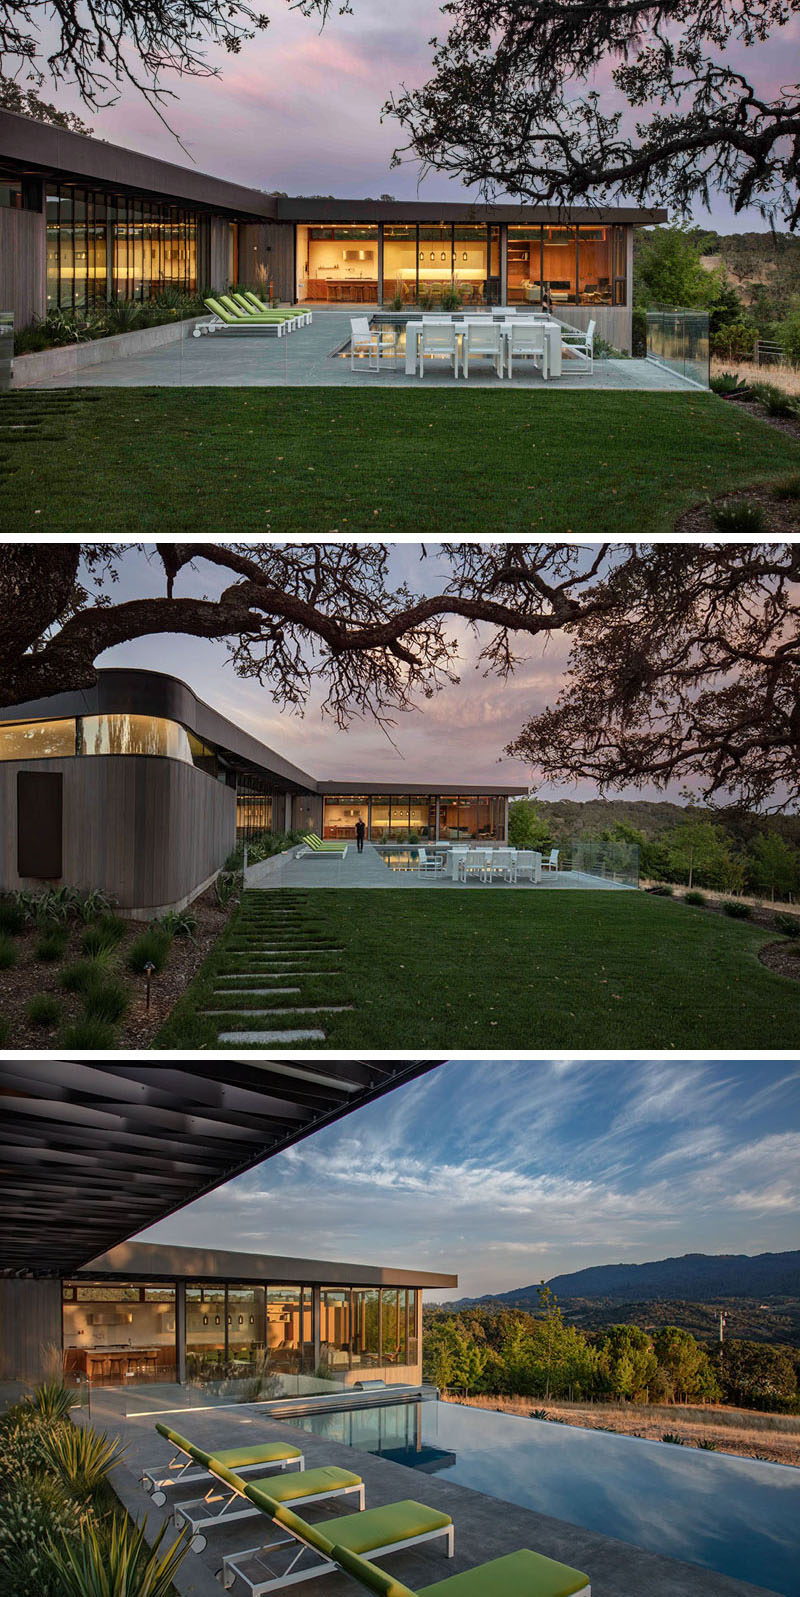 This modern house wraps around a patio and swimming pool, and at one end, there's an outdoor dining area. #SwimmingPool #Patio #OutdoorDining